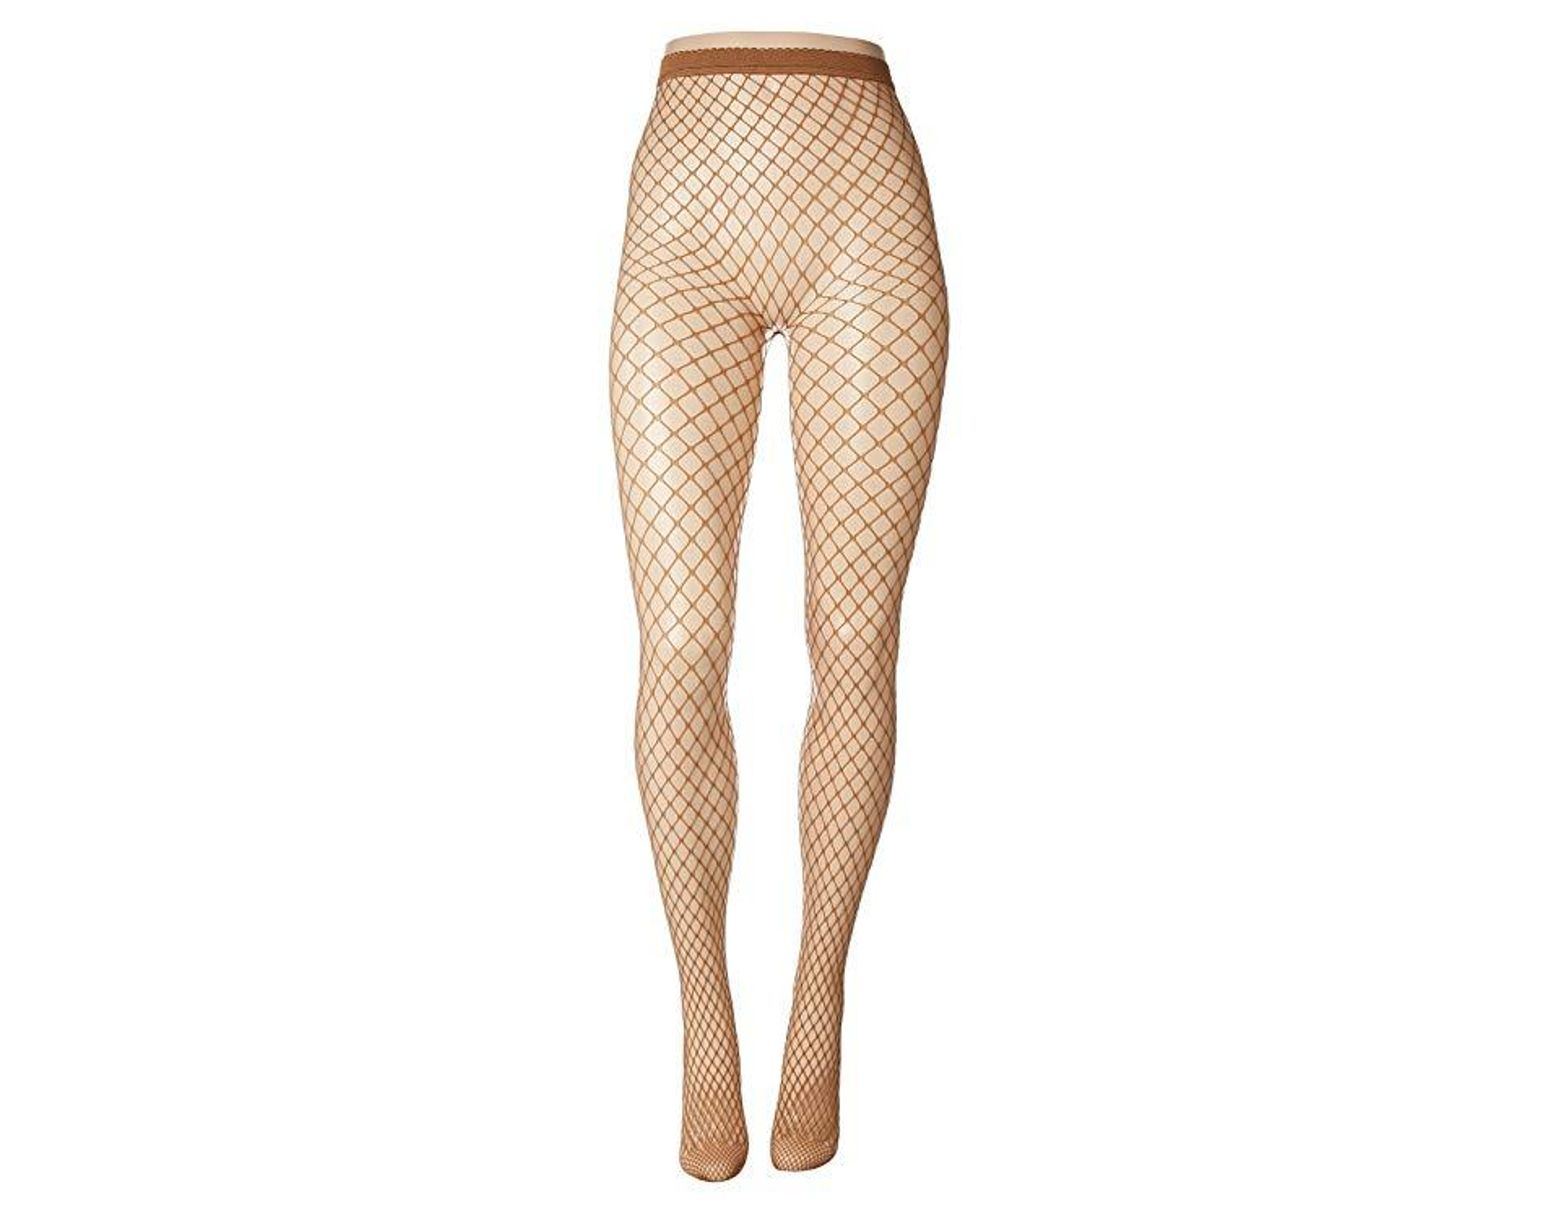 48a29d8f601c6 Wolford Tina Summer Net Tights (honey) Hose in Natural - Save 36% - Lyst